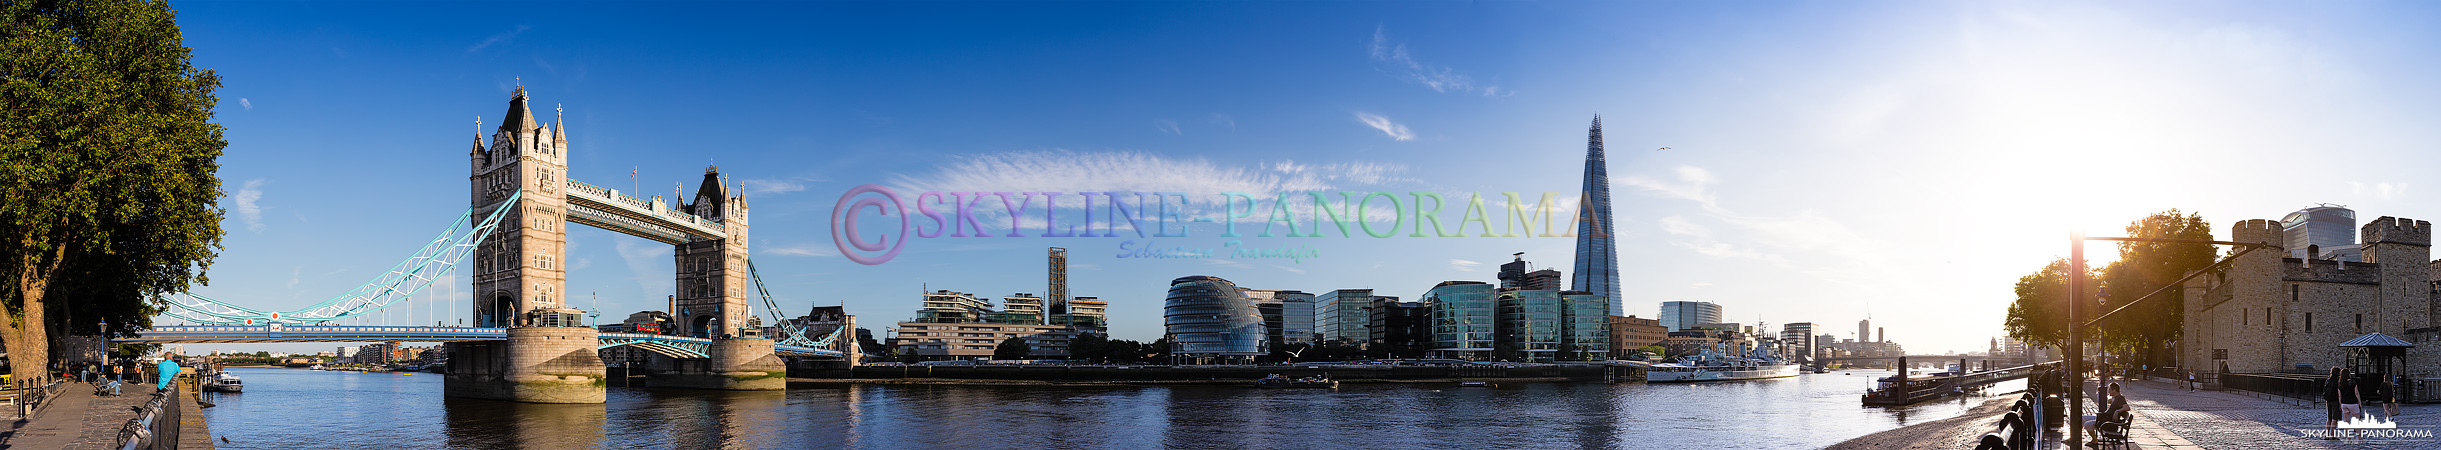 London am Tag - Die Skyline von London mit der historischen Tower Bridge, der Londoner City Hall und dem futuristischen Hochhaus The Shard vom Themse Ufer aus gesehen.